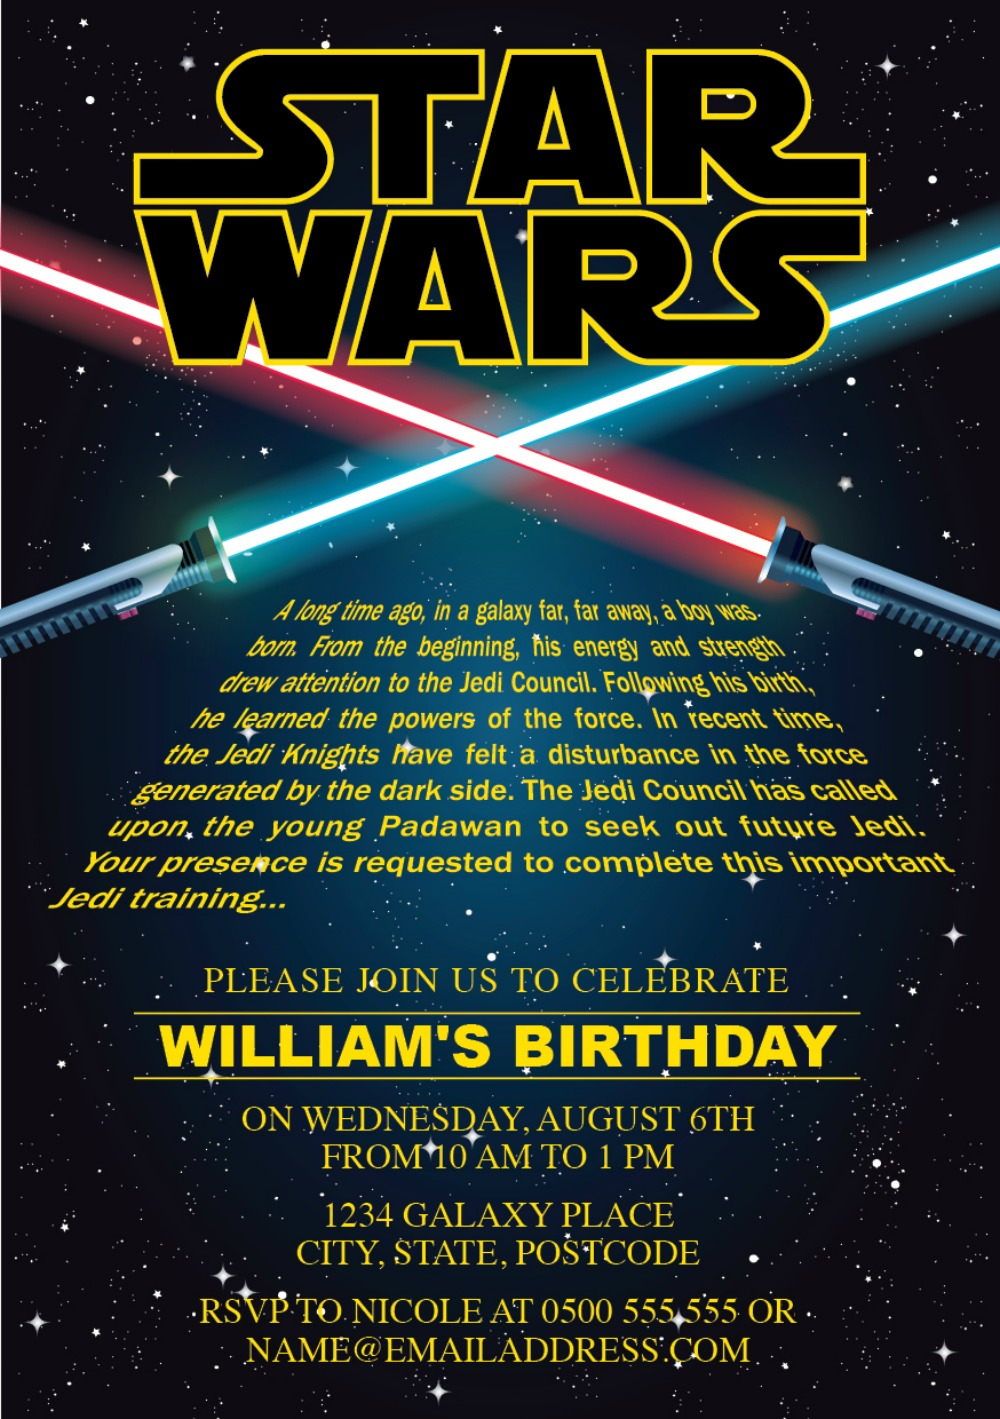 Star Wars Party Invites for nice invitations sample